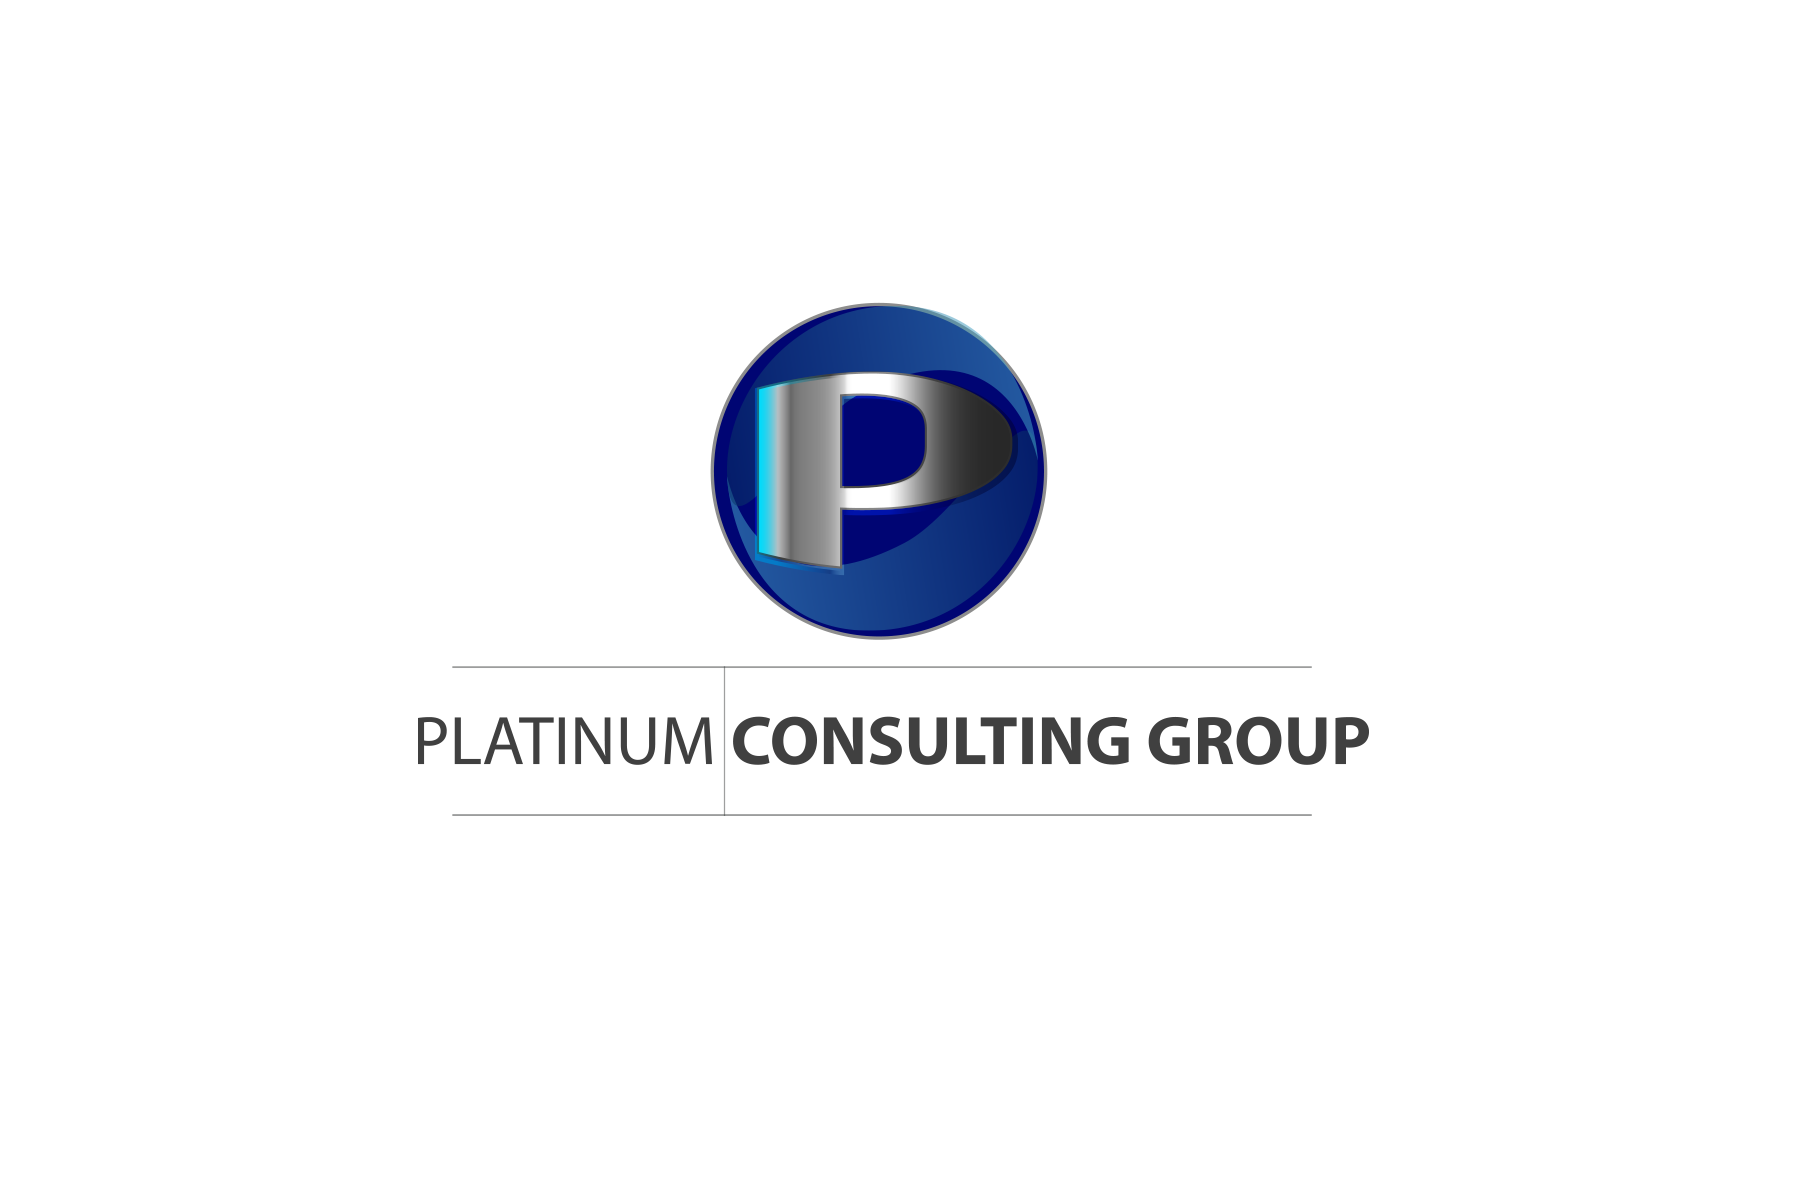 Logo Design by Rozsa Matyas - Entry No. 69 in the Logo Design Contest Captivating Logo Design for Platinum Consulting Group.